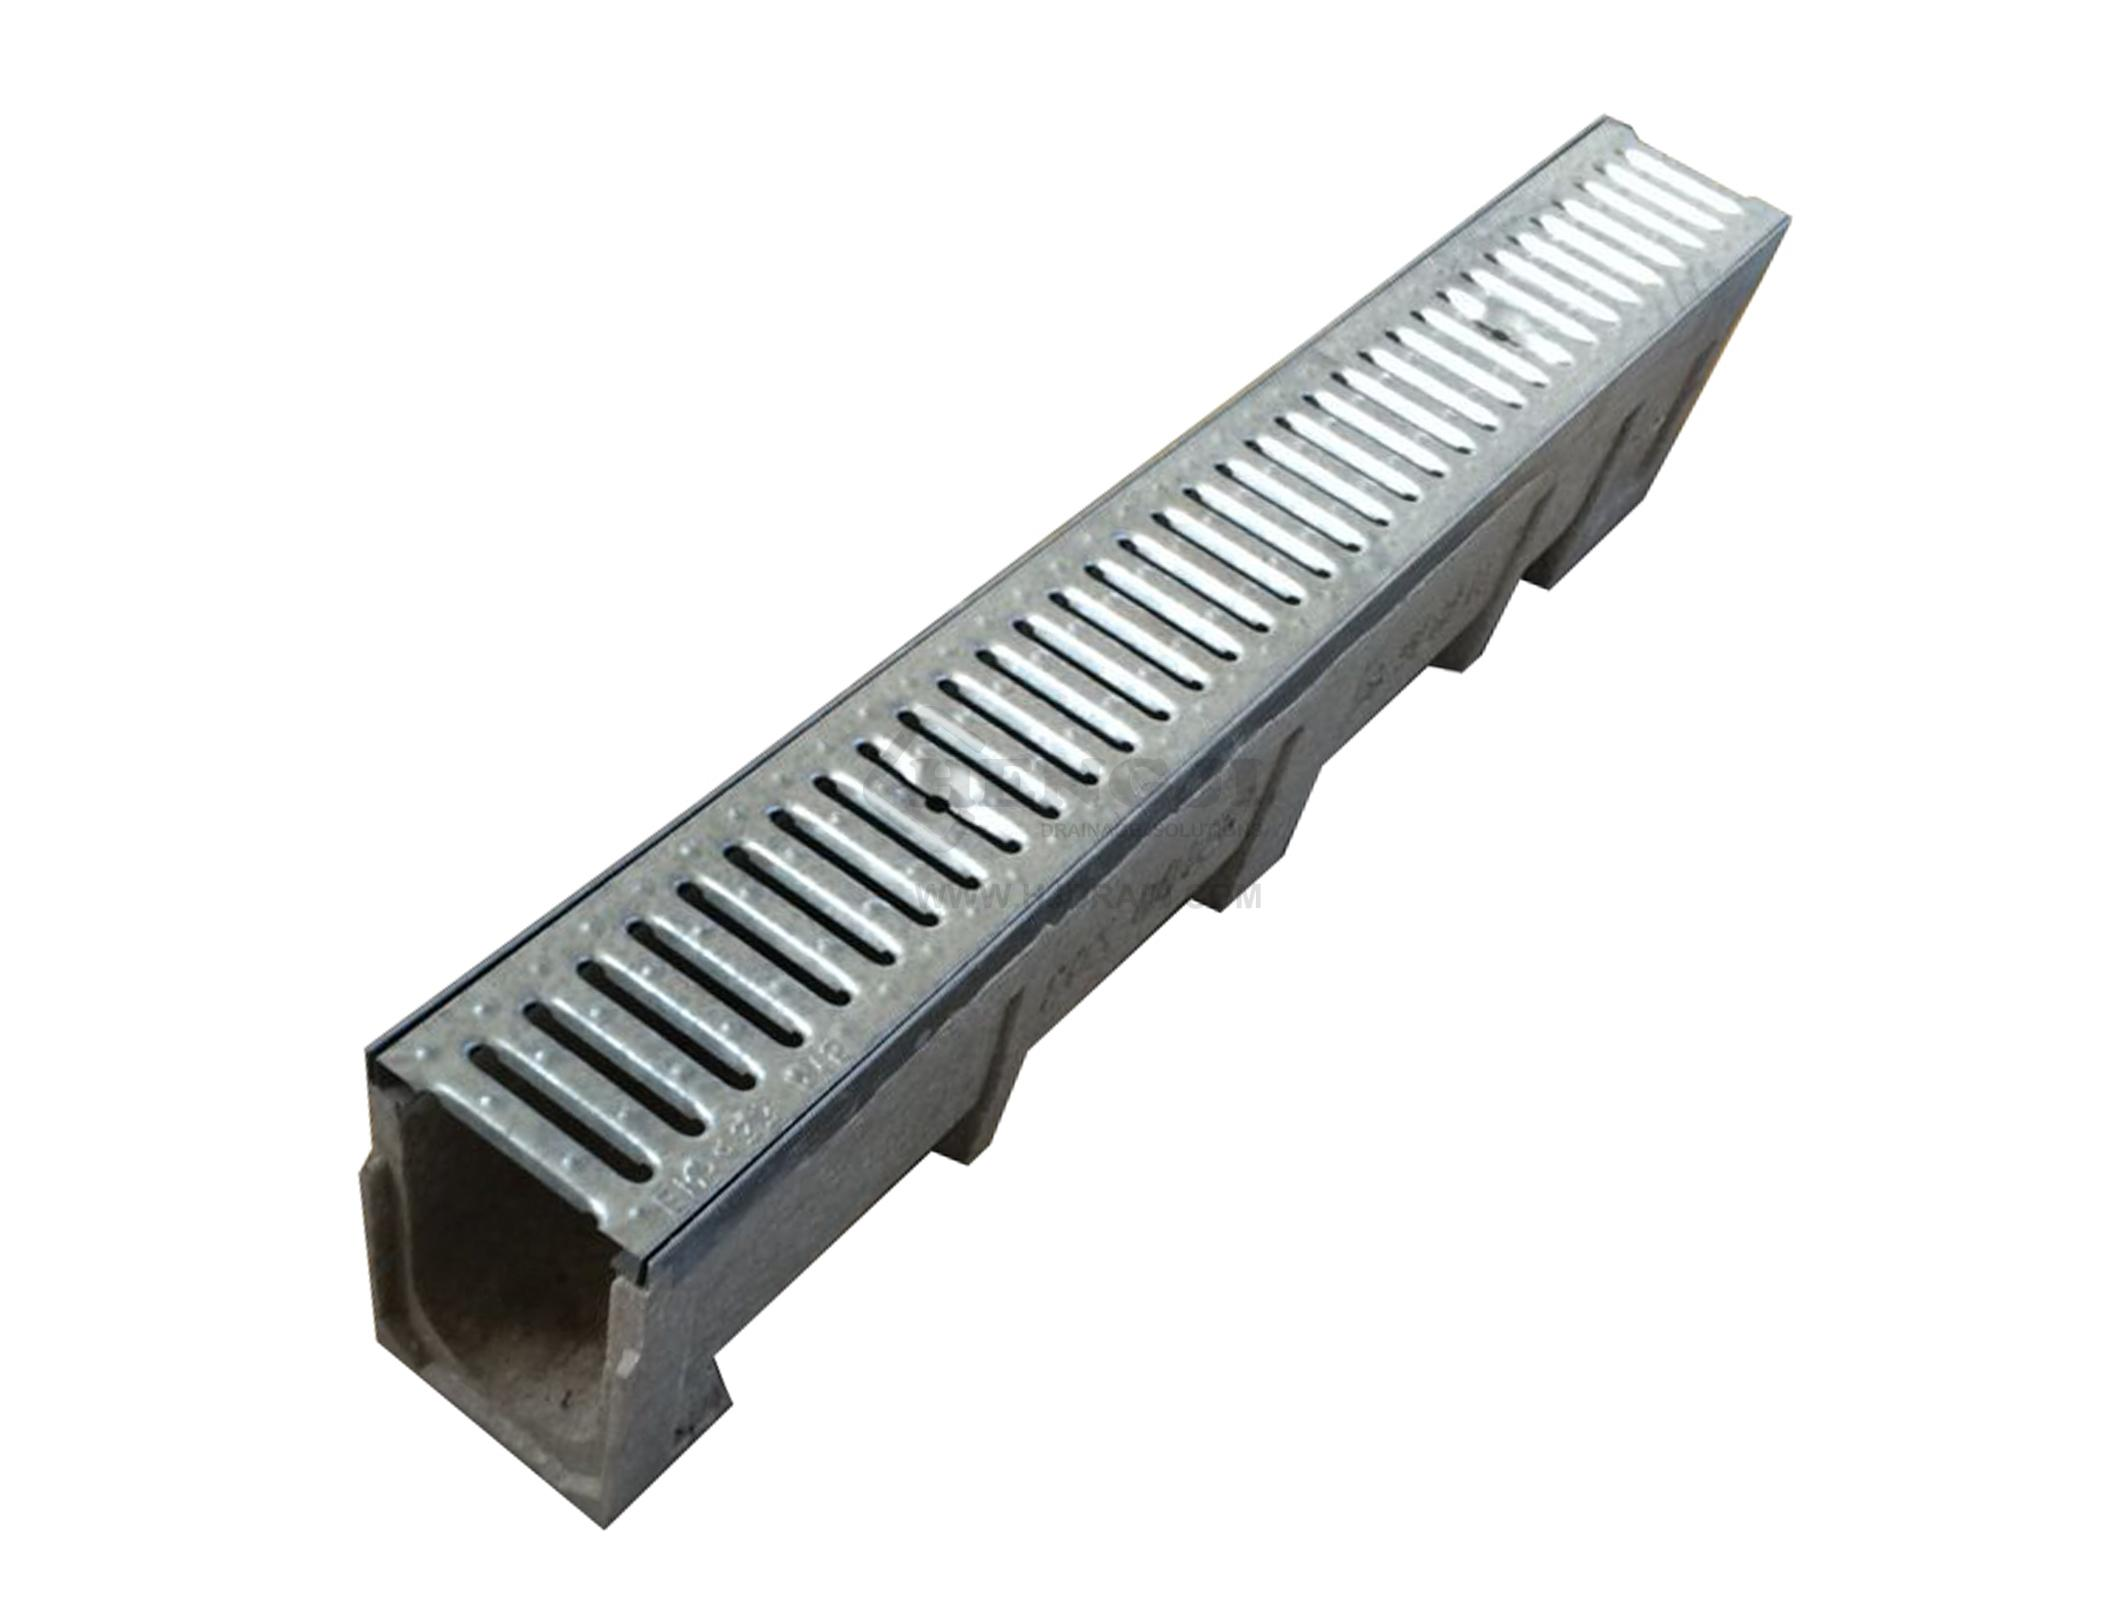 Trench Drain Se100 Z03 With Stainless Steel Grate